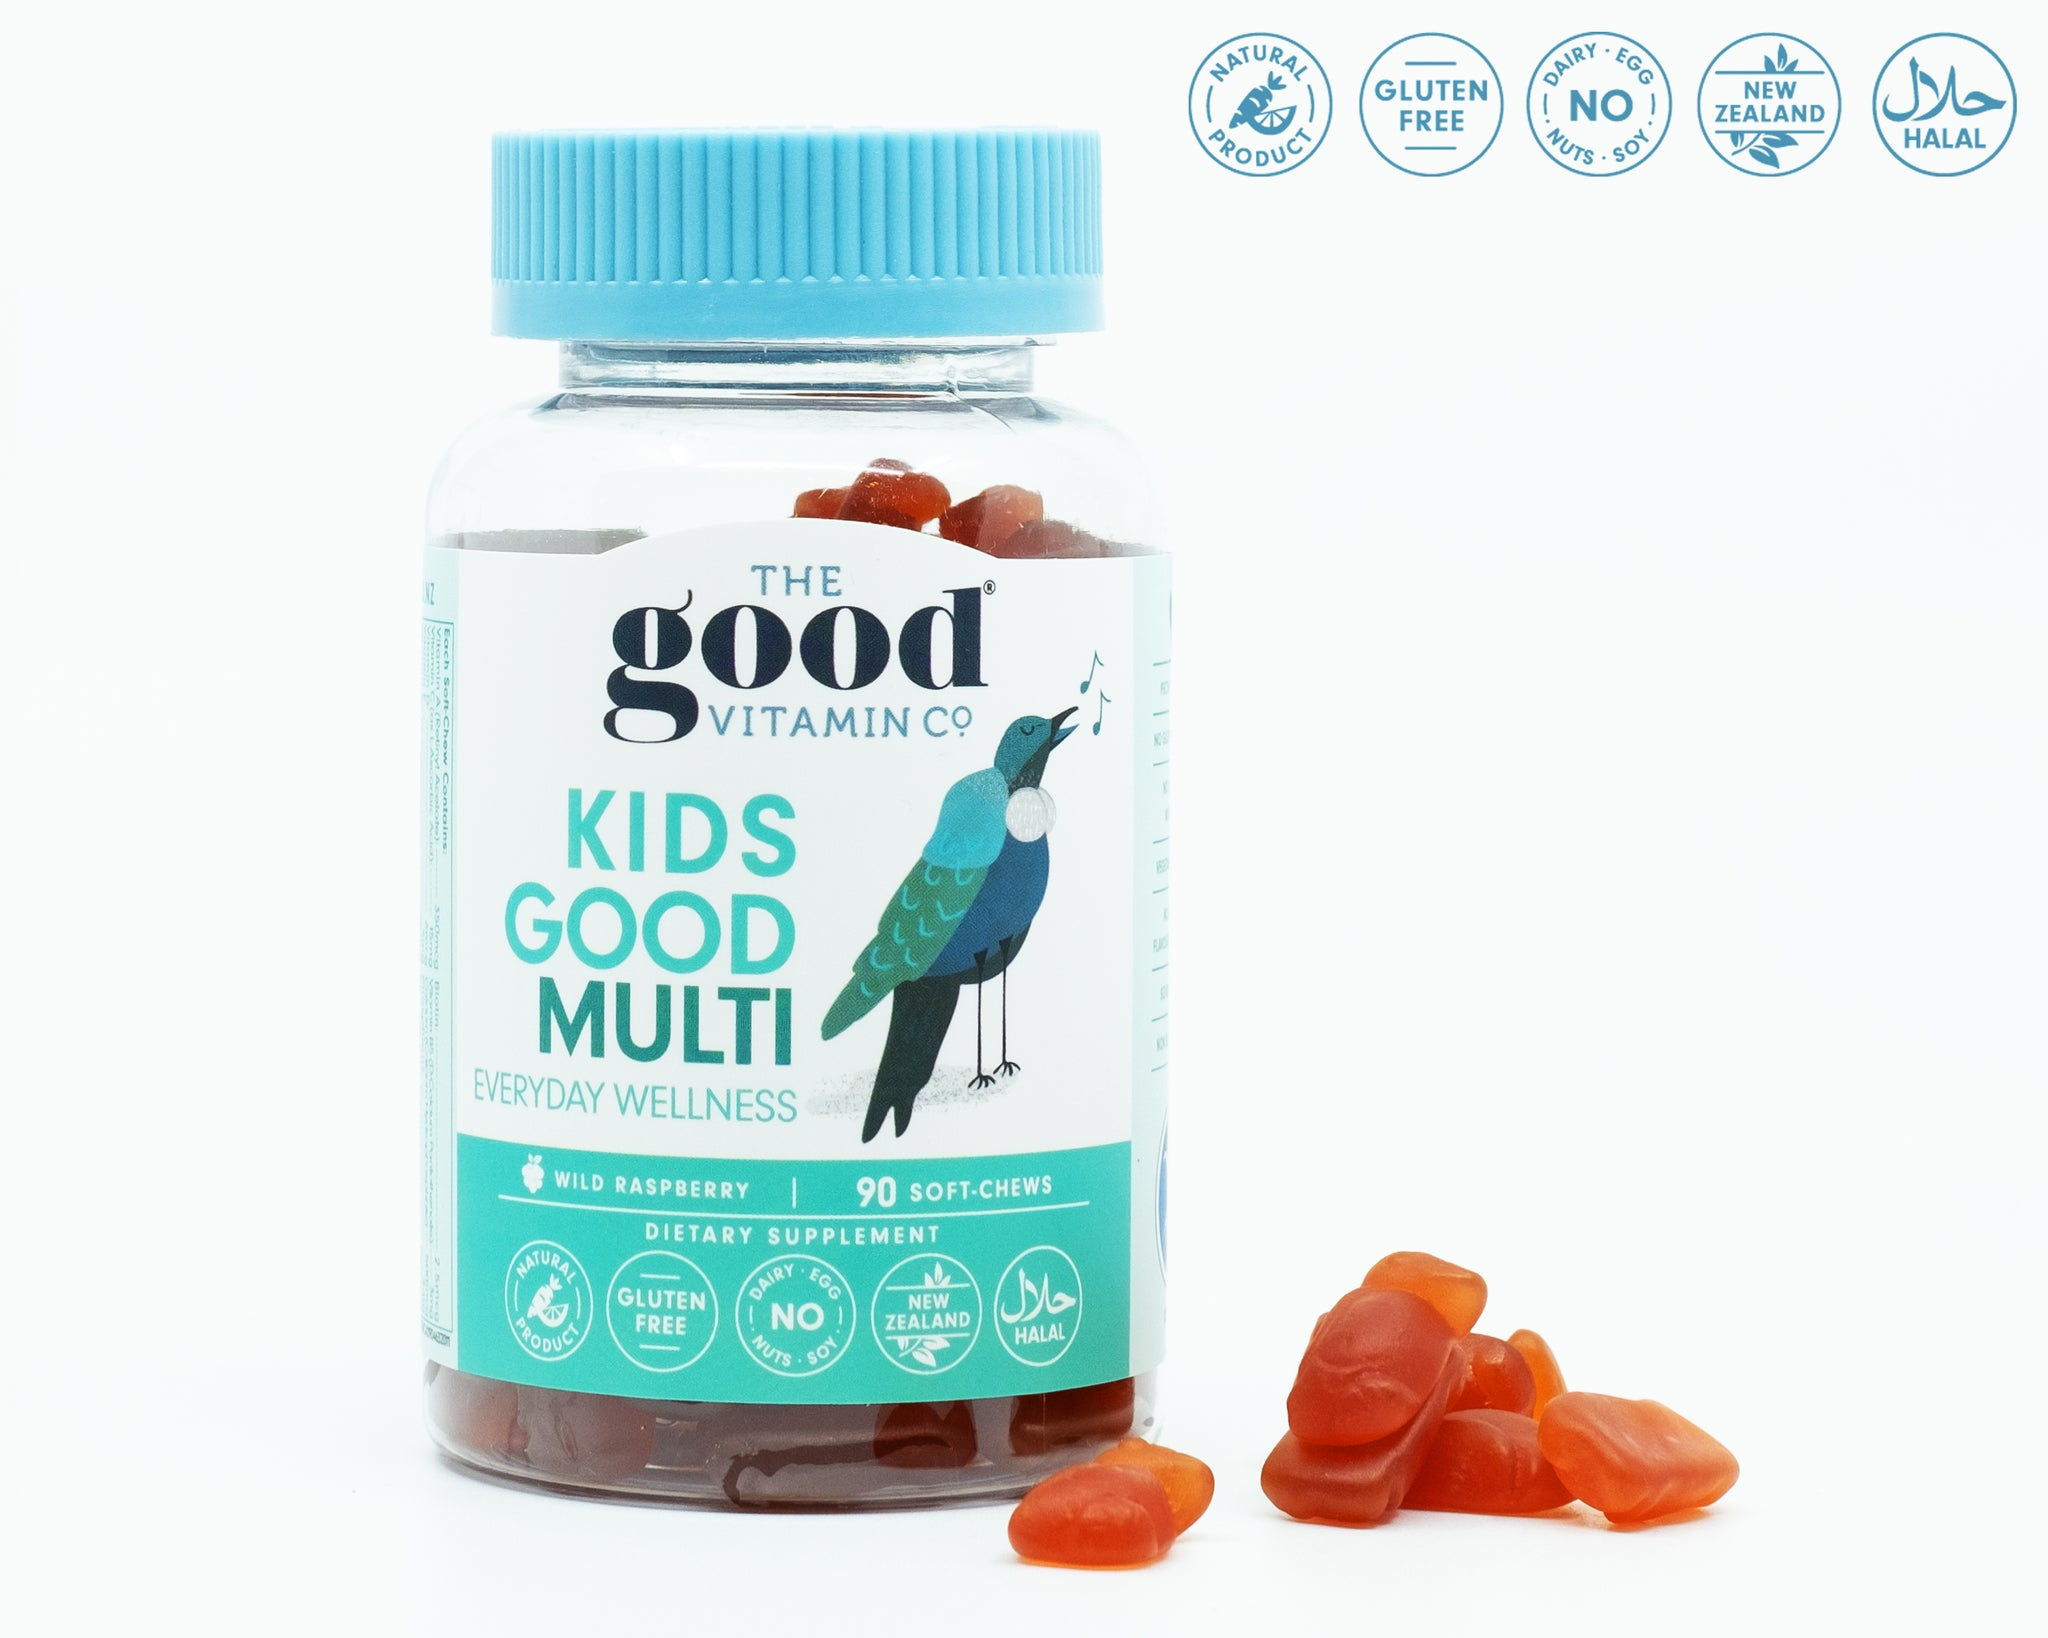 TheGoodVitaminCo Kids Good Multi 90 Soft-Chews